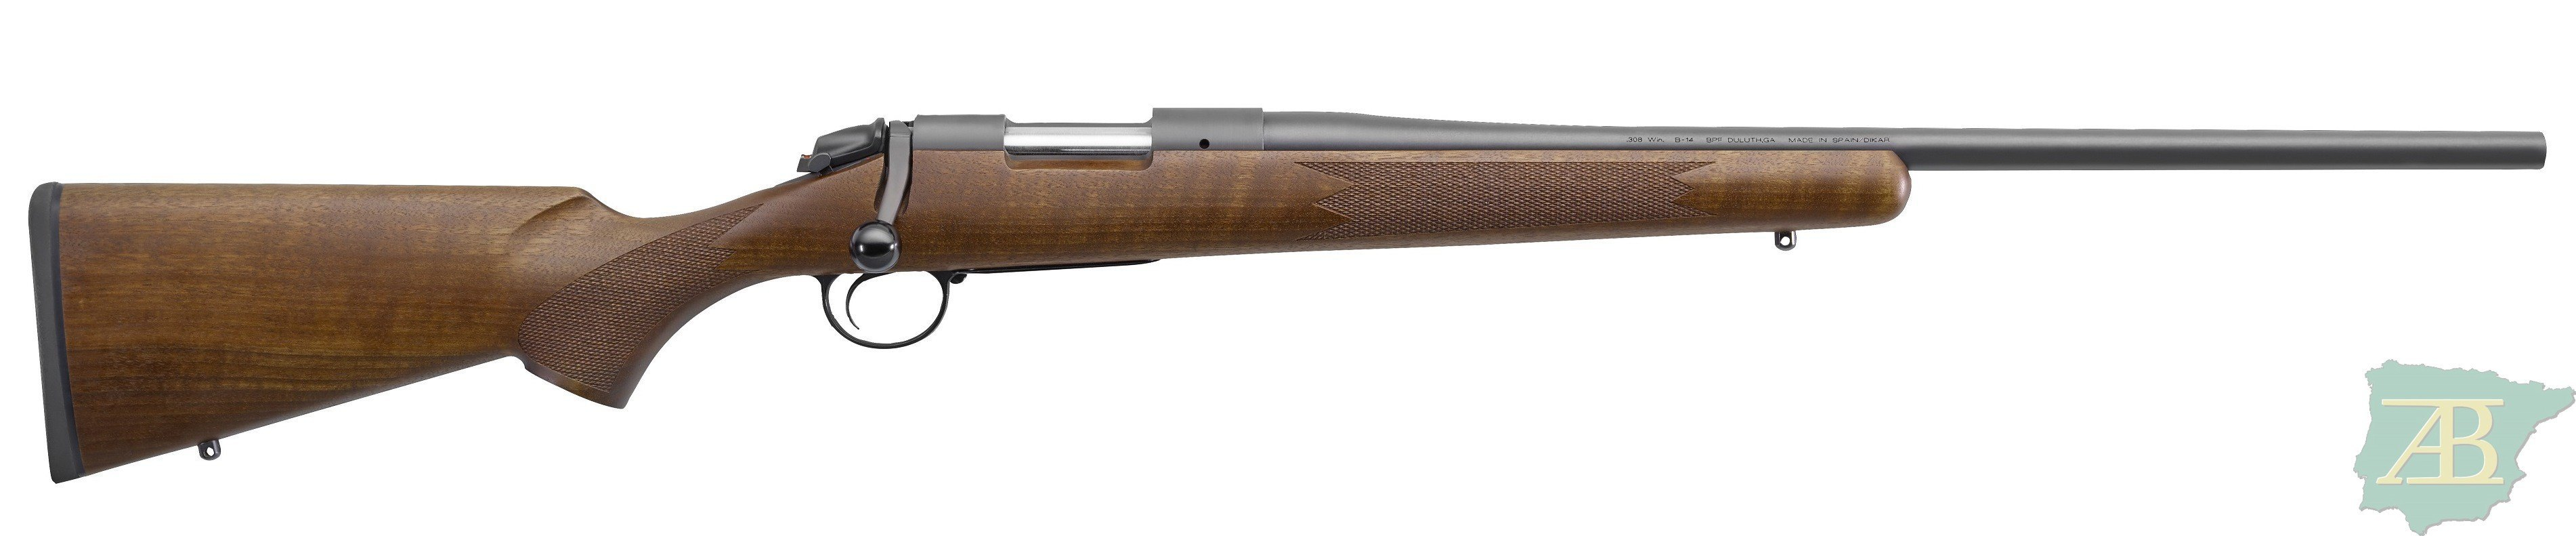 RIFLE DE CERROJO DE CAZA BERGARA BA14 THREAD BLUED W/O